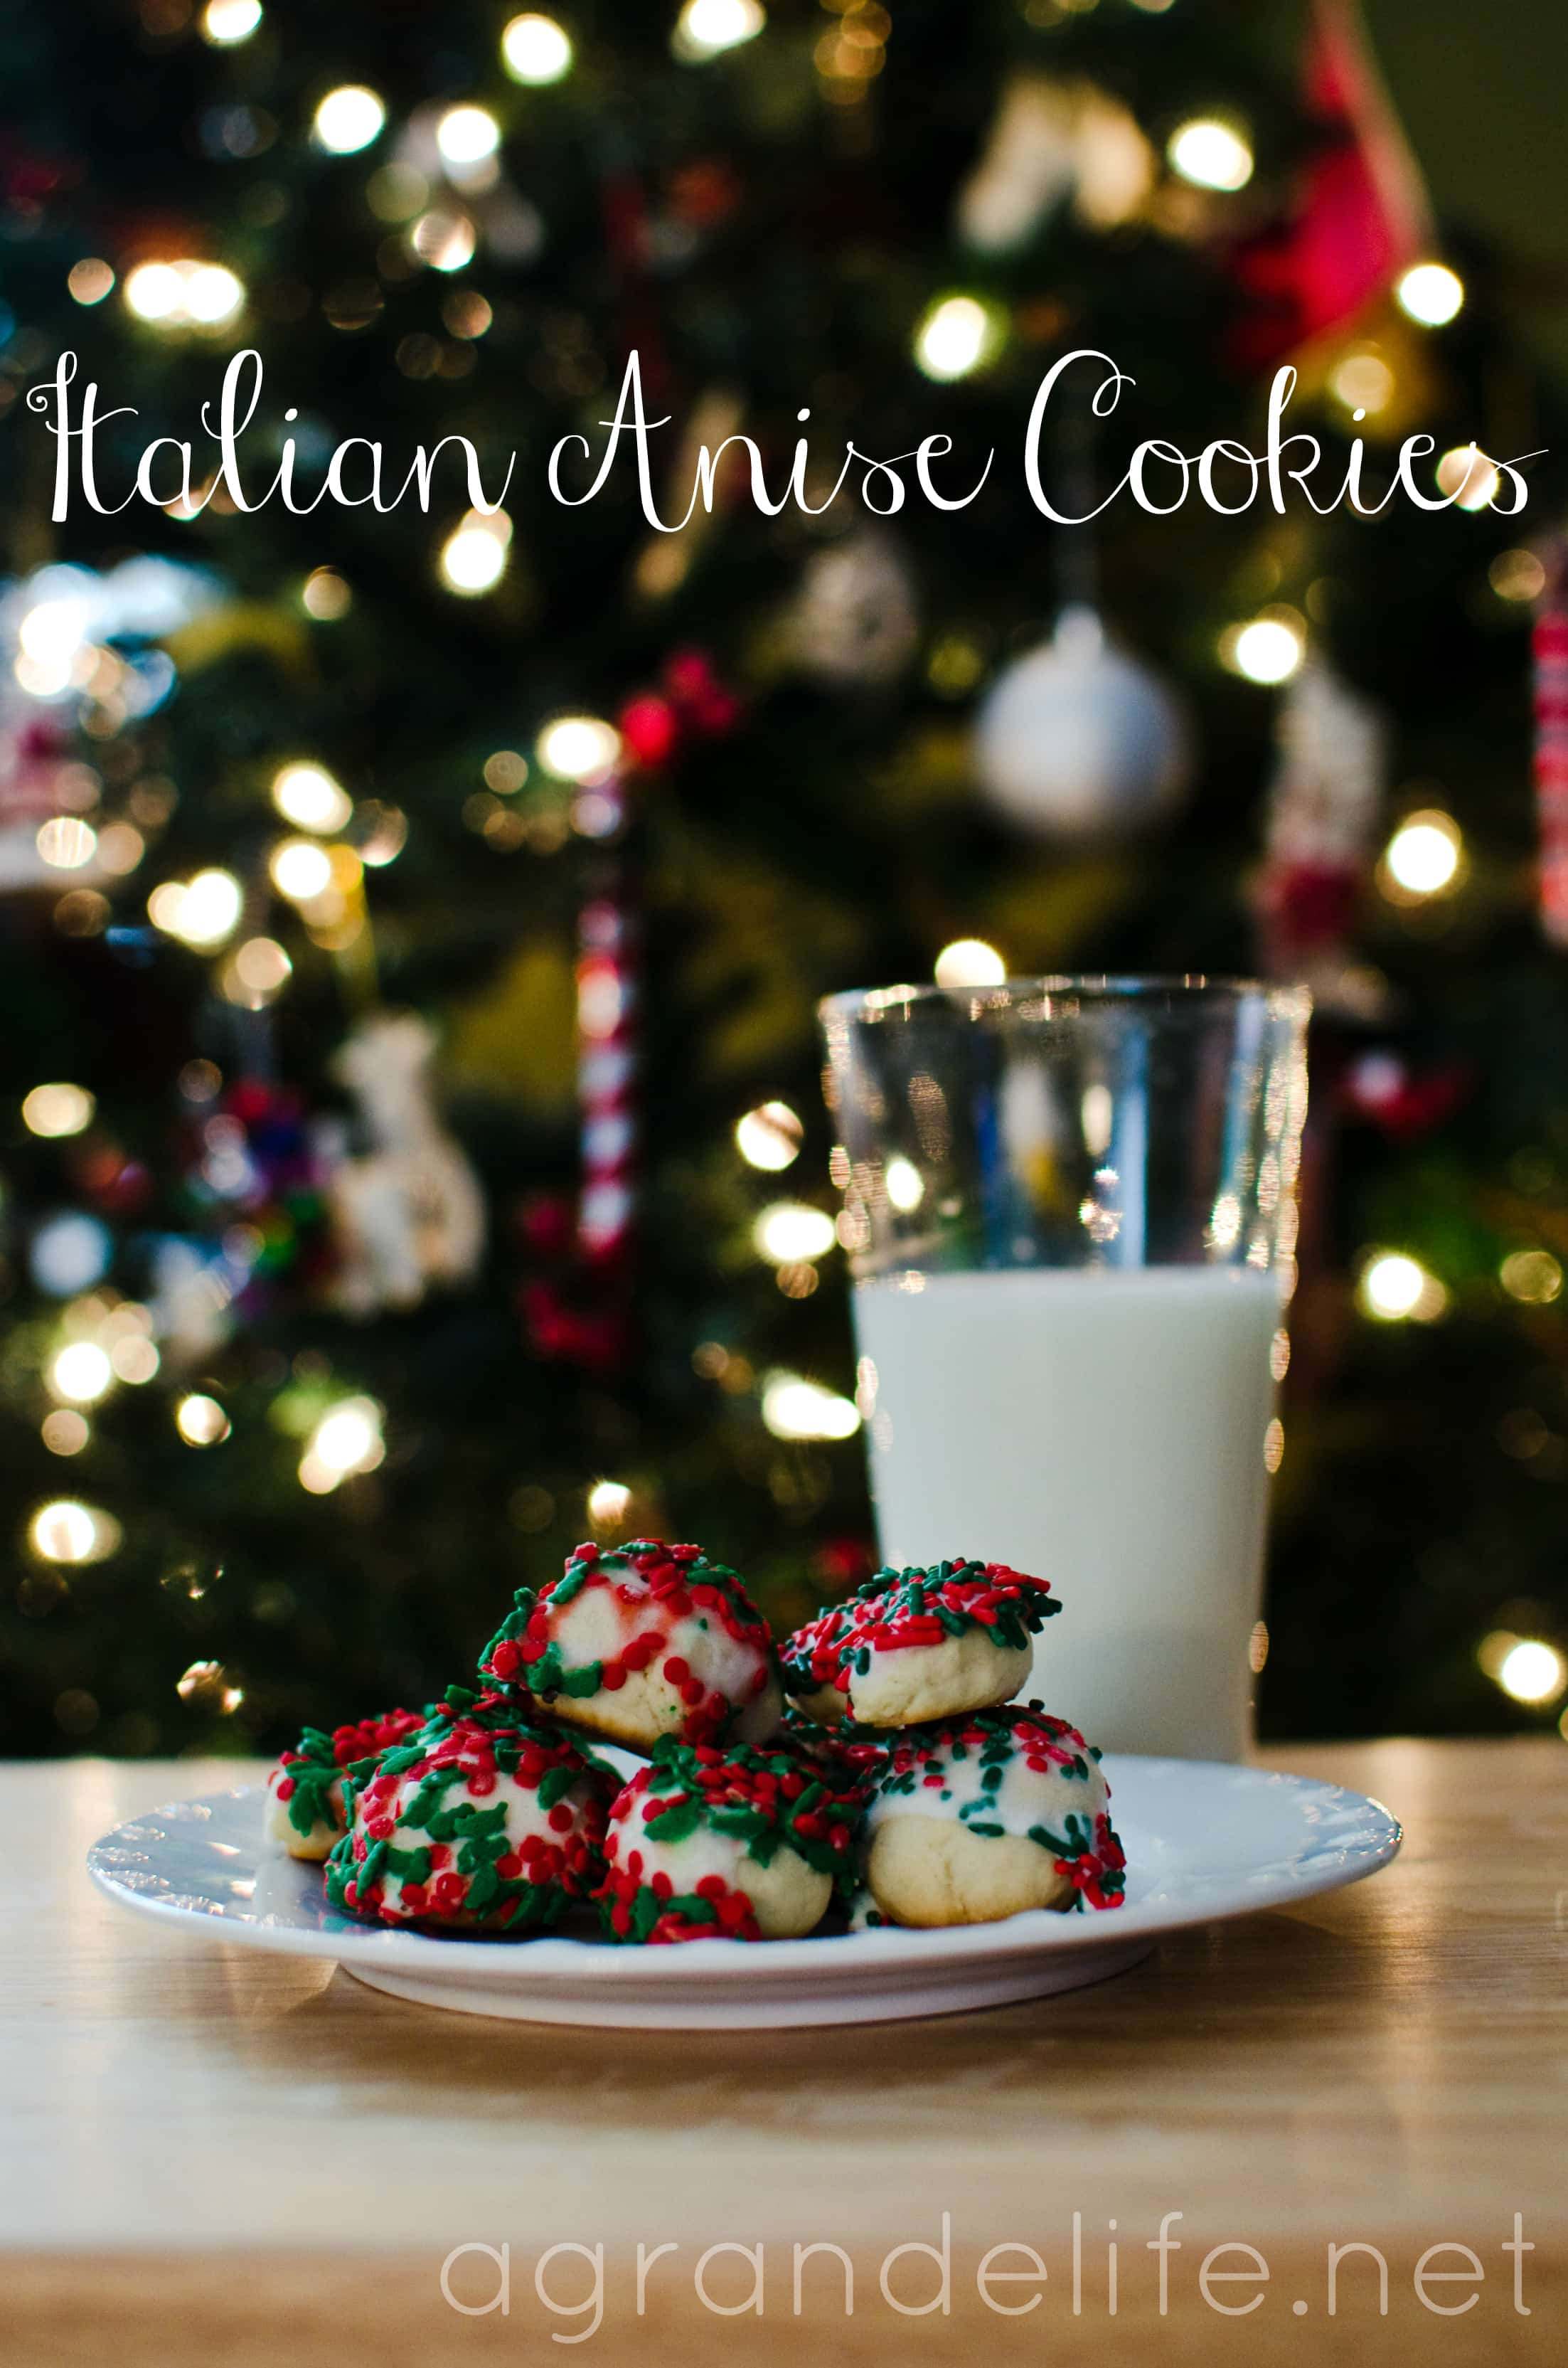 day 1 of the 12 days of christmas cookies italian anise cookies - Italian Christmas Cookies Anise